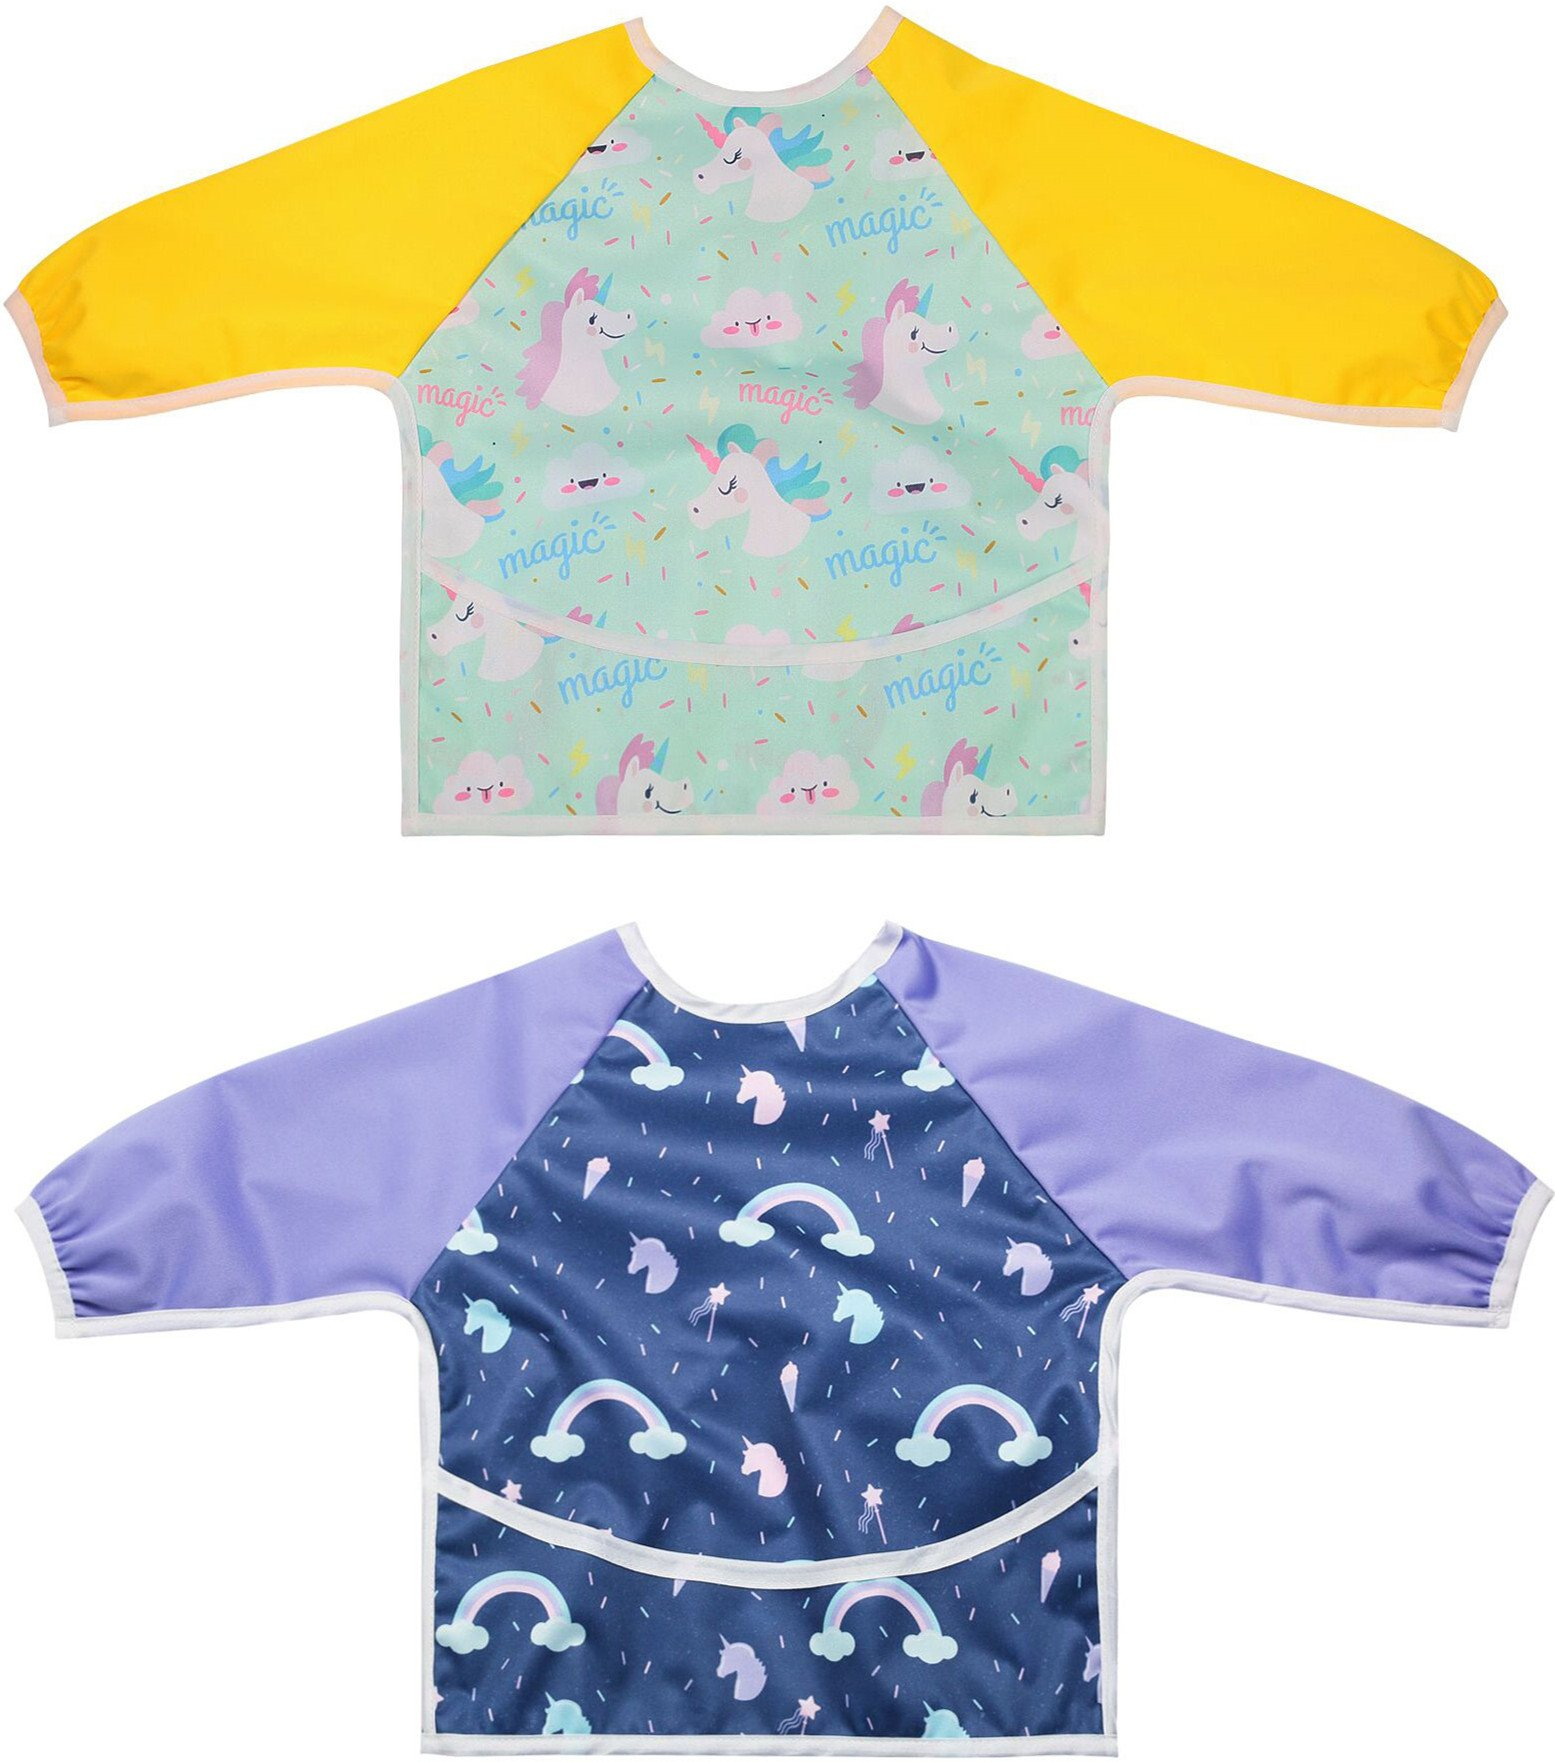 2 Pack''Unicorn & Rainbow'' Long Sleeved Bib Waterproof Bibs with Pocket for Baby and Toddler- 6 to 24 months baby girl by Little Jump (Unicorn & Rainbow)